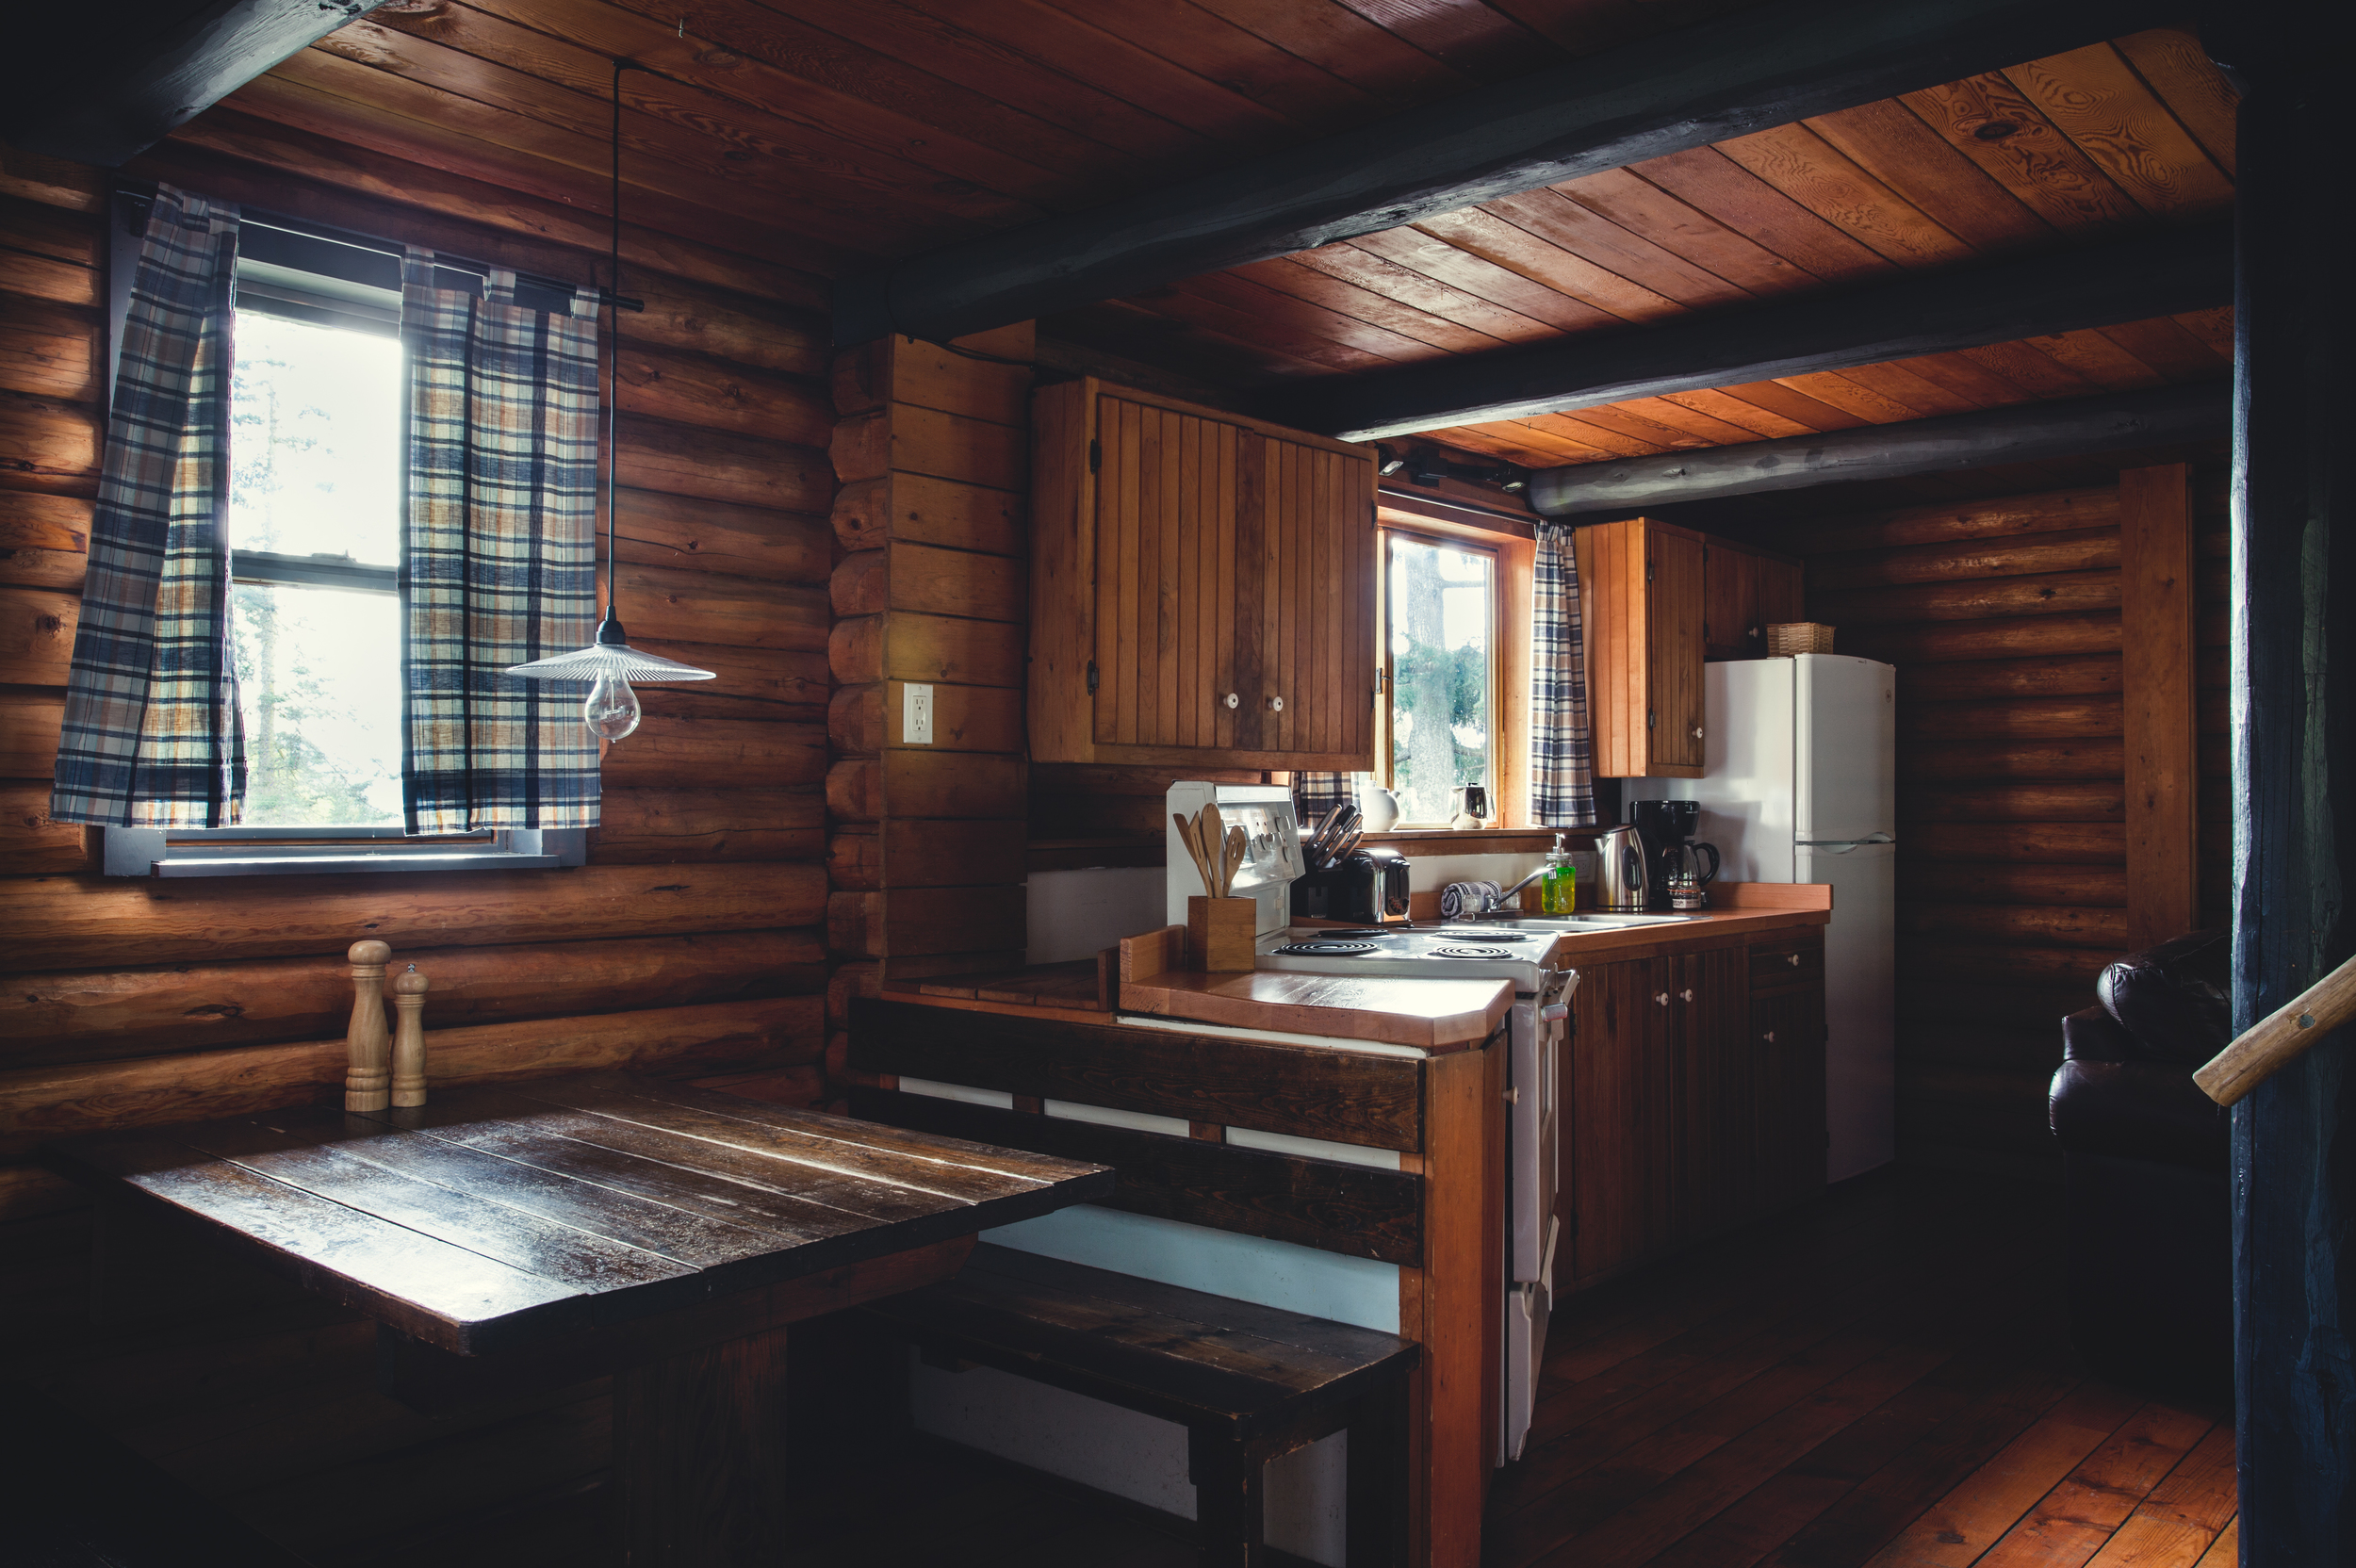 150402_Bodega_Cabin_Interior_52-Edit.jpg